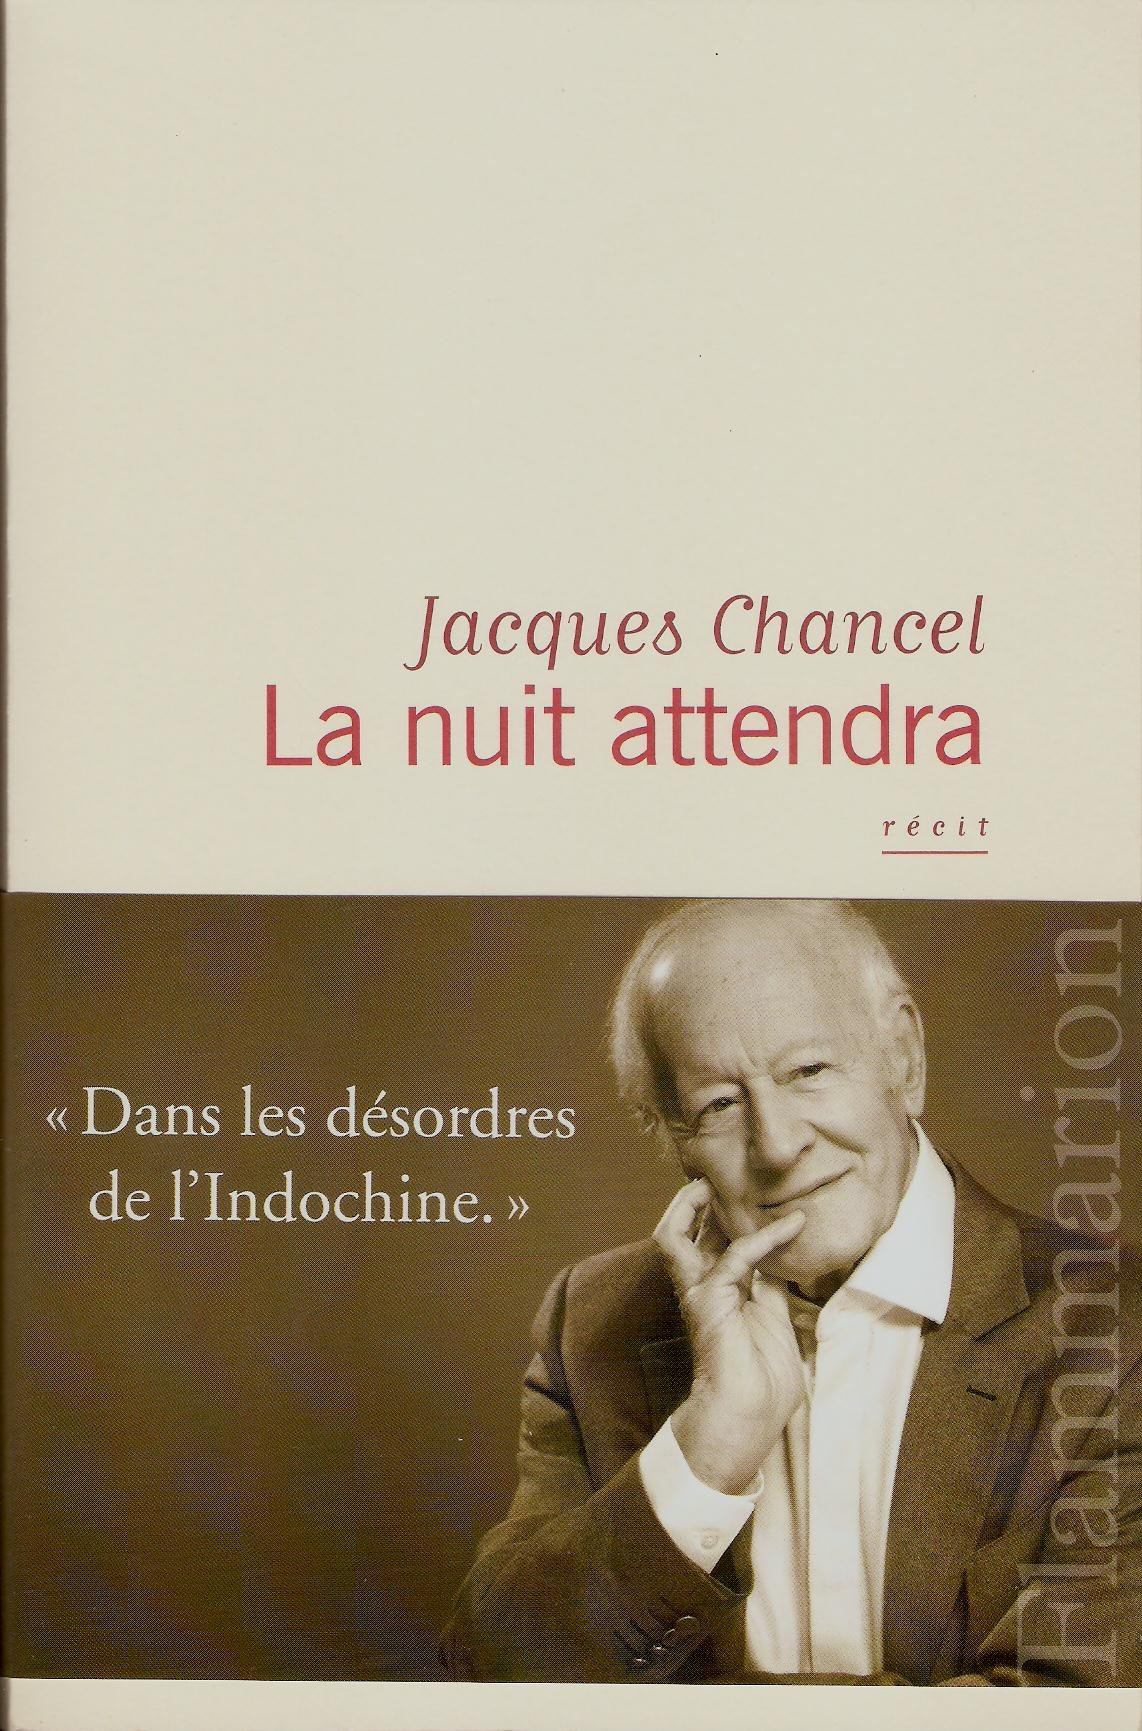 La nuit attendra Jacques Chancel Flammarion